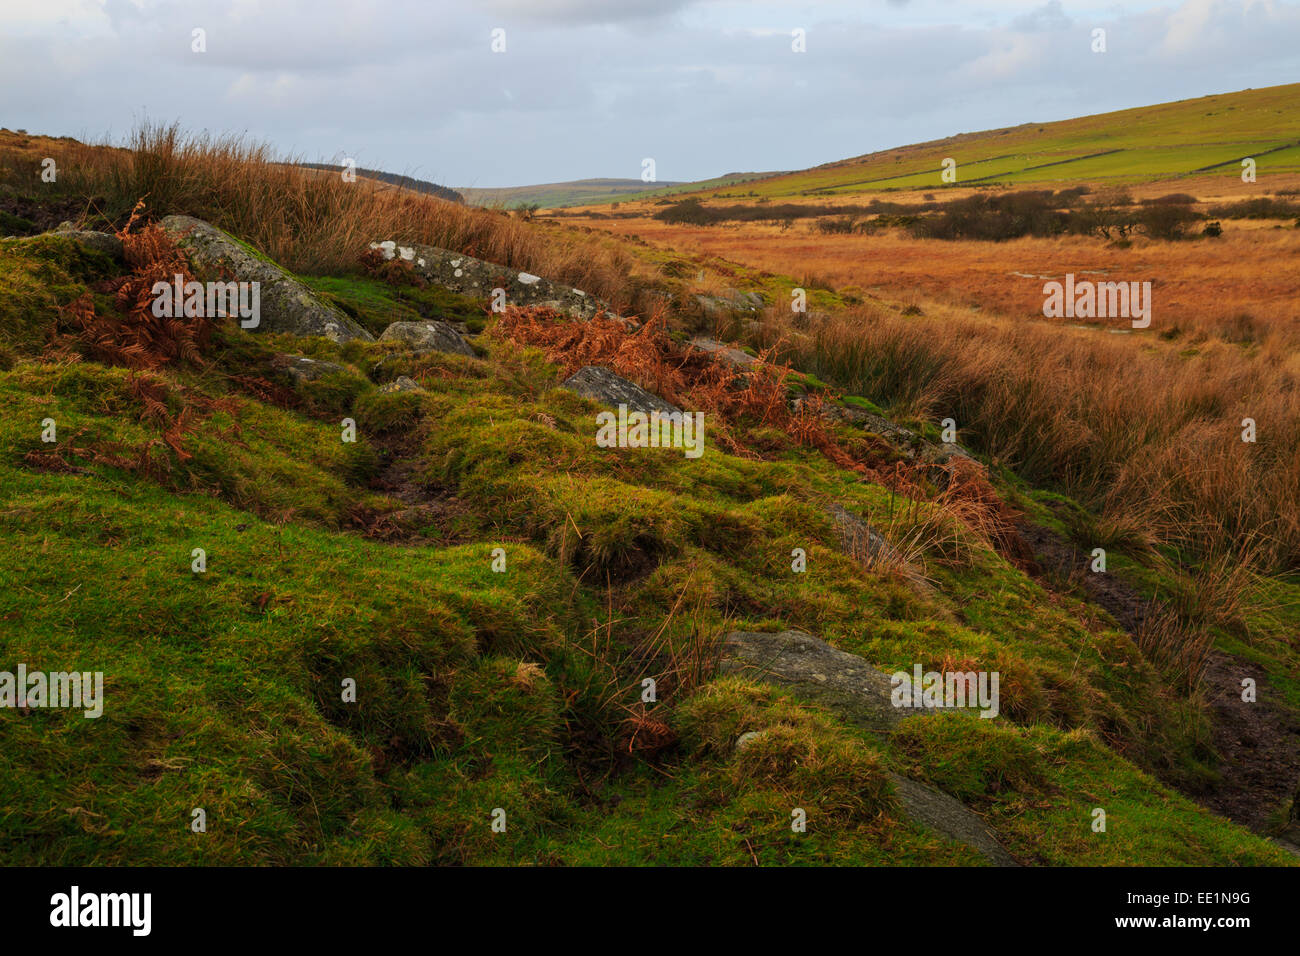 Bodmin moor from Gold diggings quarry - Stock Image